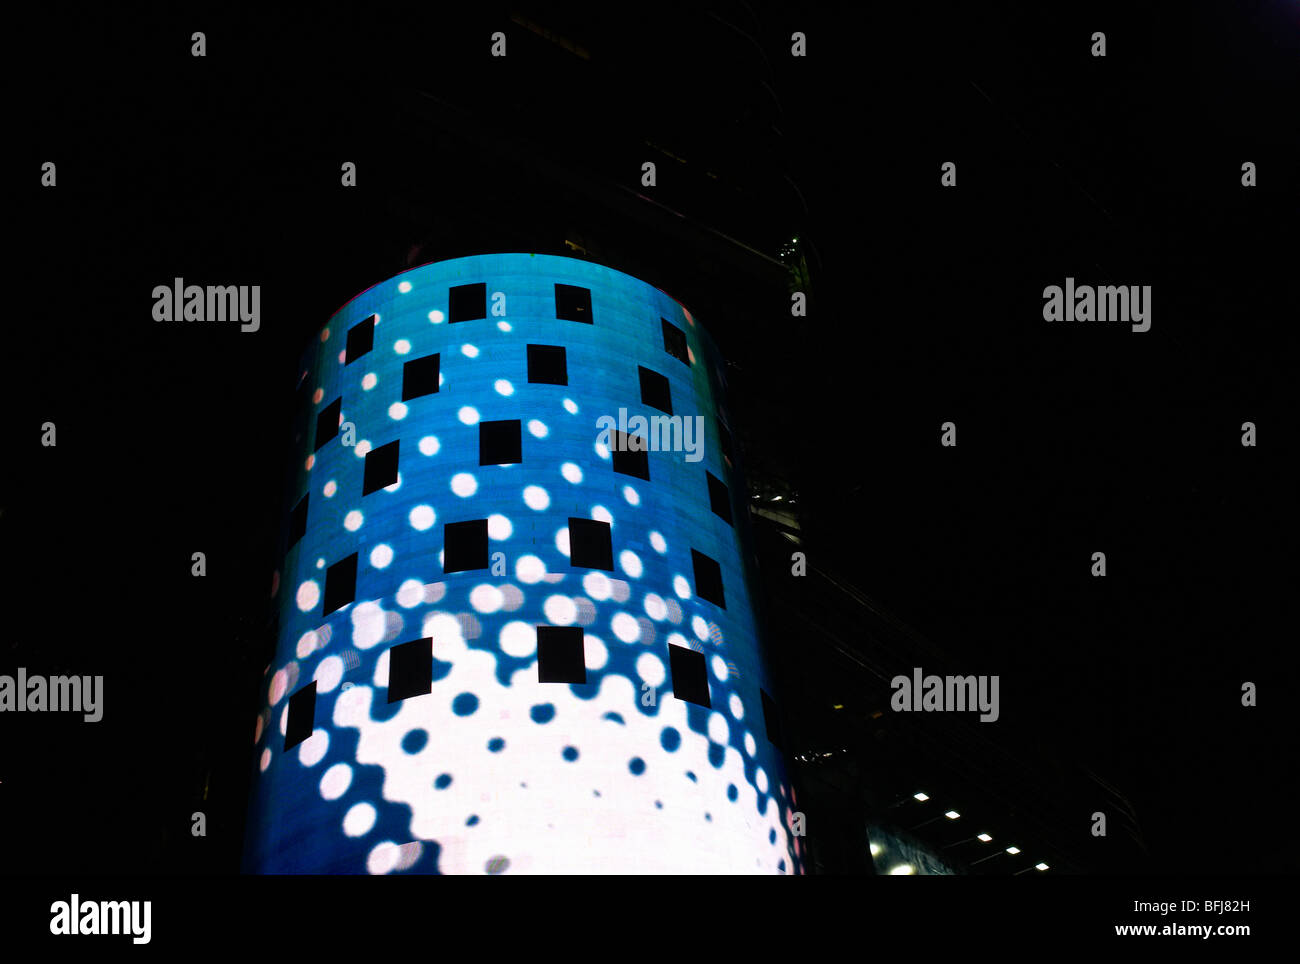 Light projected on a round building, New York, USA. - Stock Image